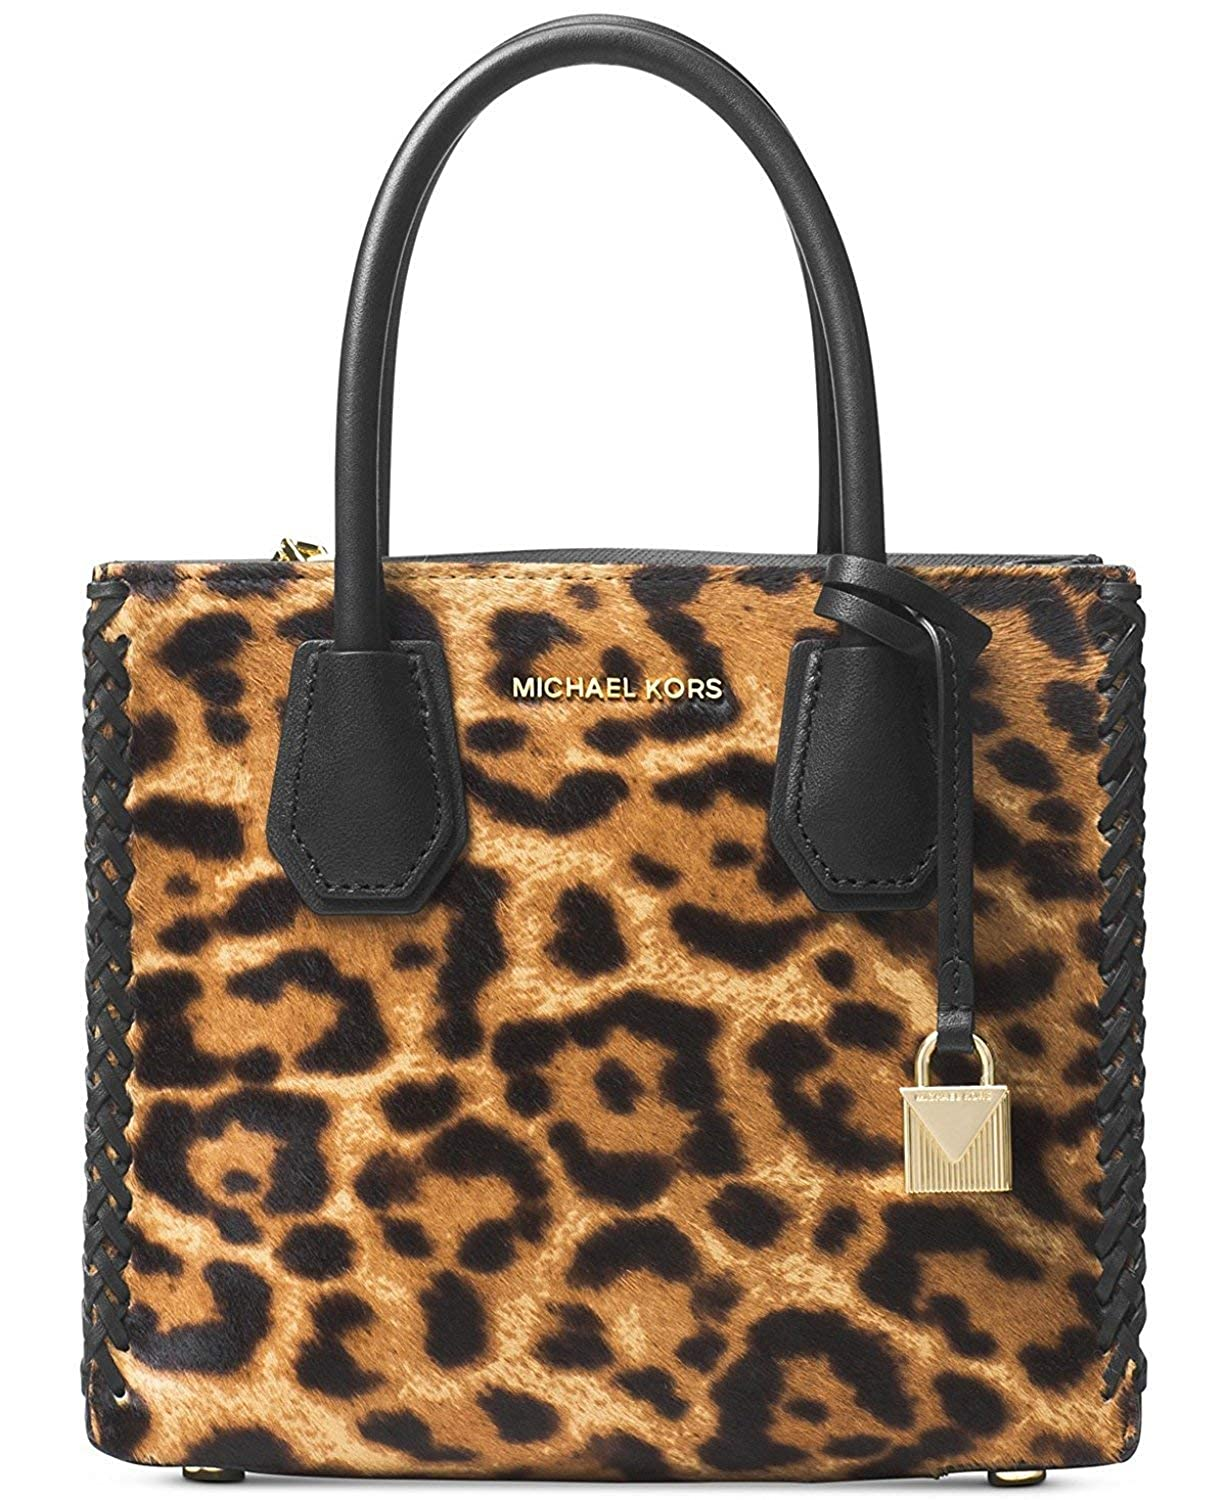 9395d7b04cee Amazon.com: Michael Kors Mercer Leopard Print Leather Crossbody  30F7GM9M2H226: Watches